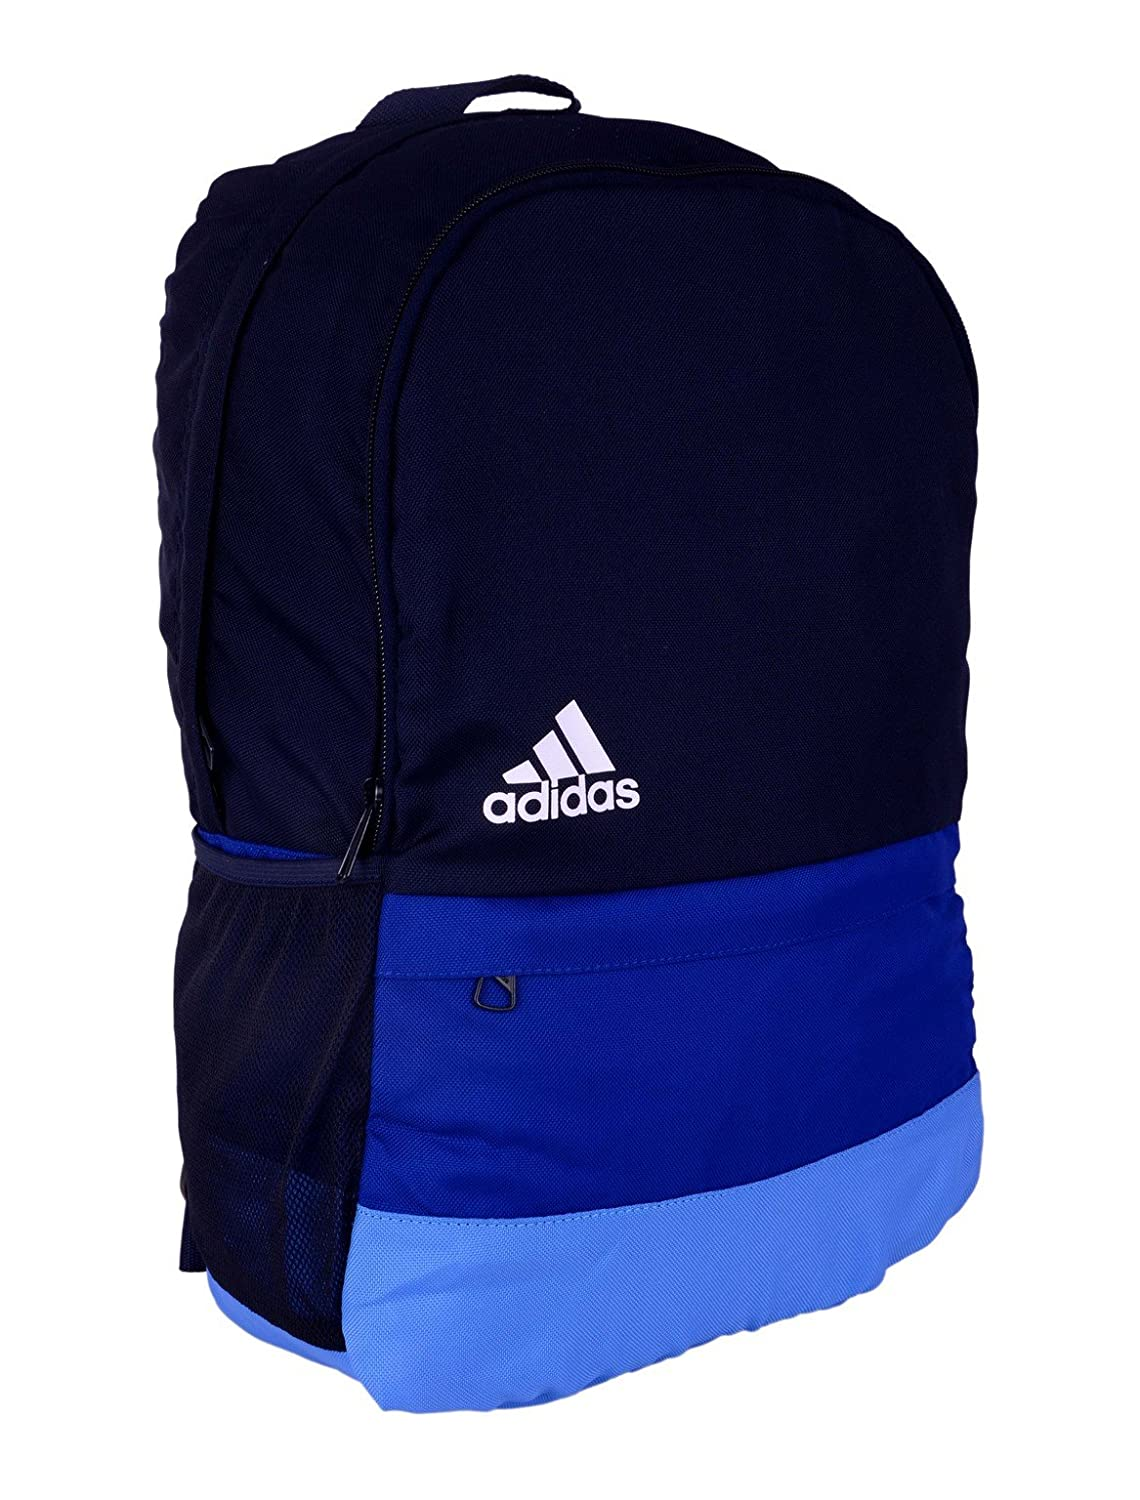 9360e13b71 Adidas Versatile Block Blue Backpack -AY5131  Amazon.in  Sports ...